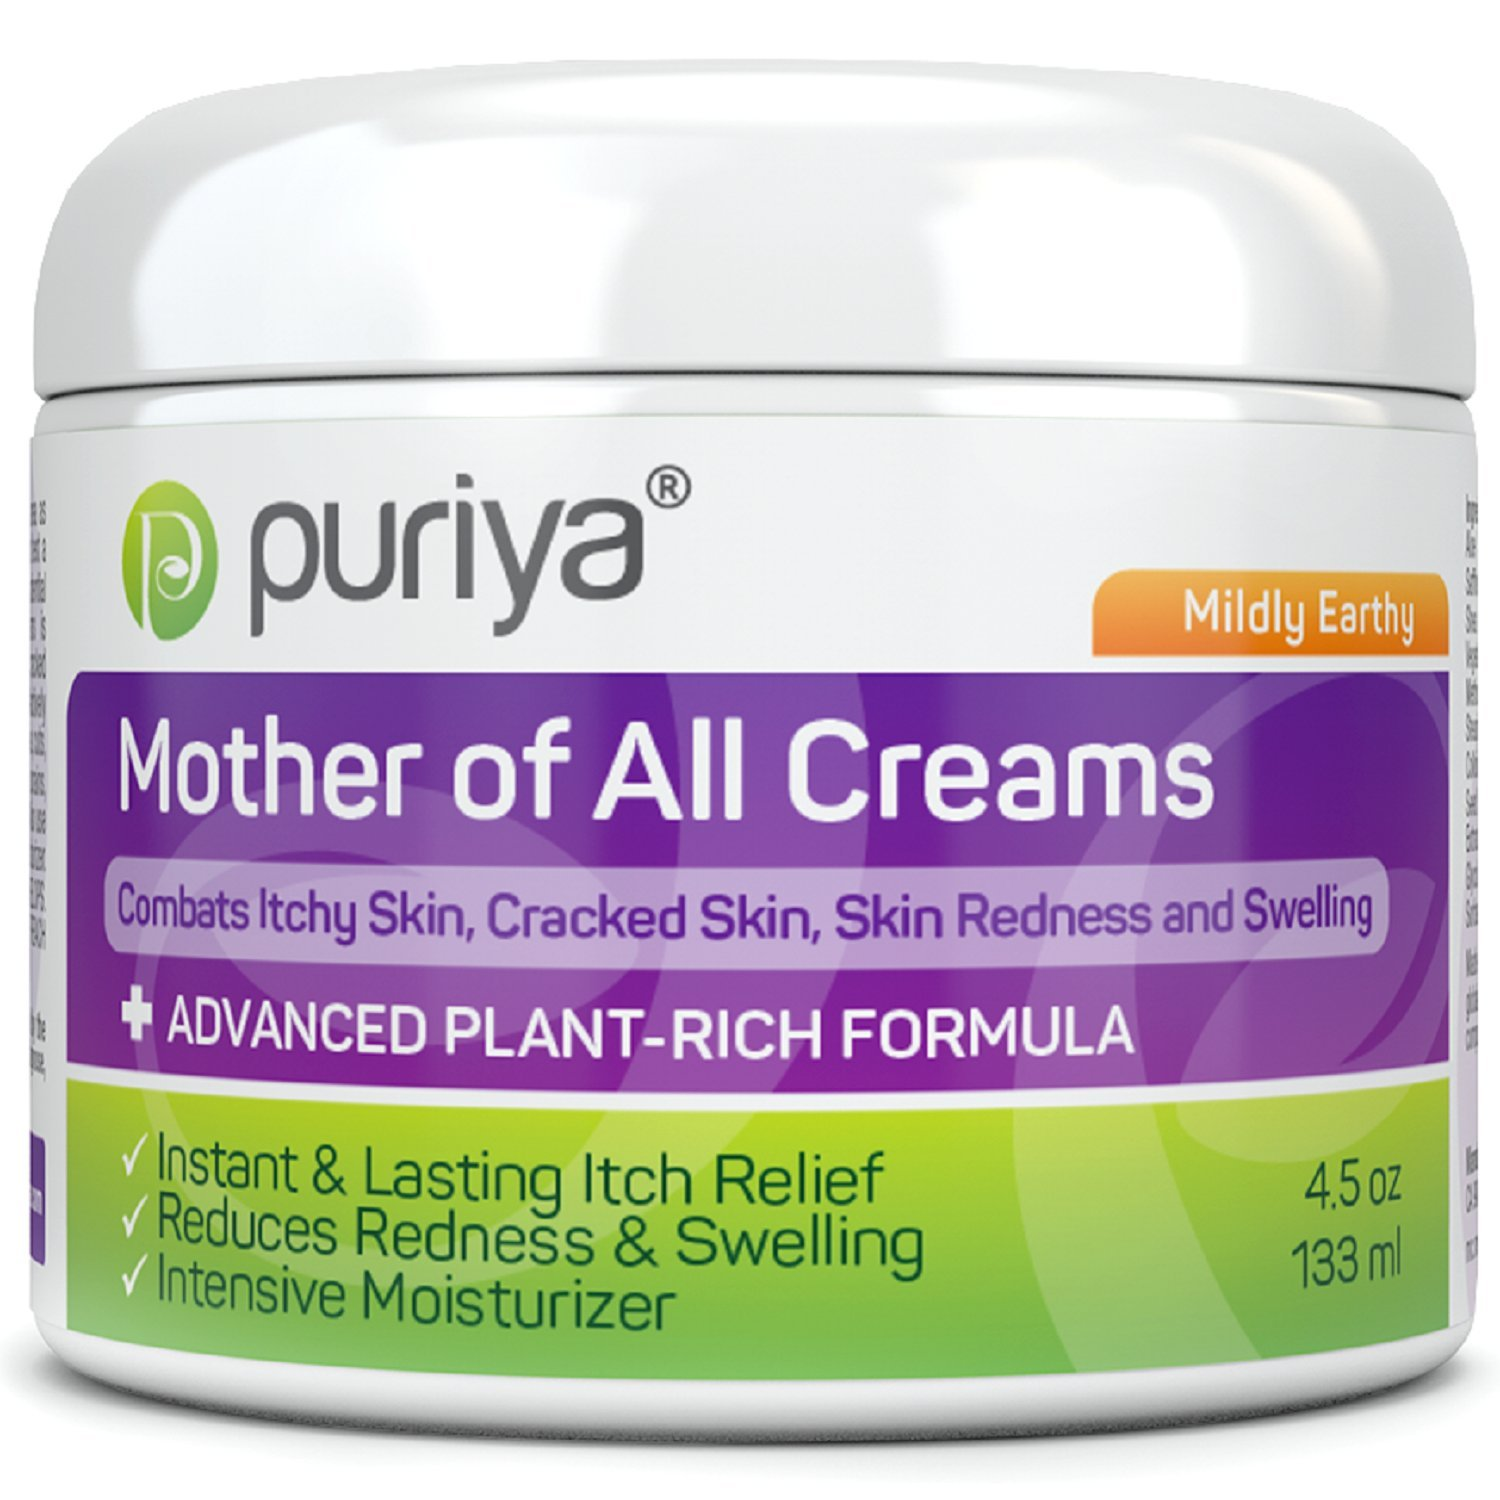 Puriya Intensive Moisturizer for Dry Cracked Skin. Gentle Body Lotion, Hand, Foot, Face Cream- Award Winning - Plant Based Instant Lasting Relief. Hydrates and Softens Rough Skin (Mildly Earthy) by Puriya